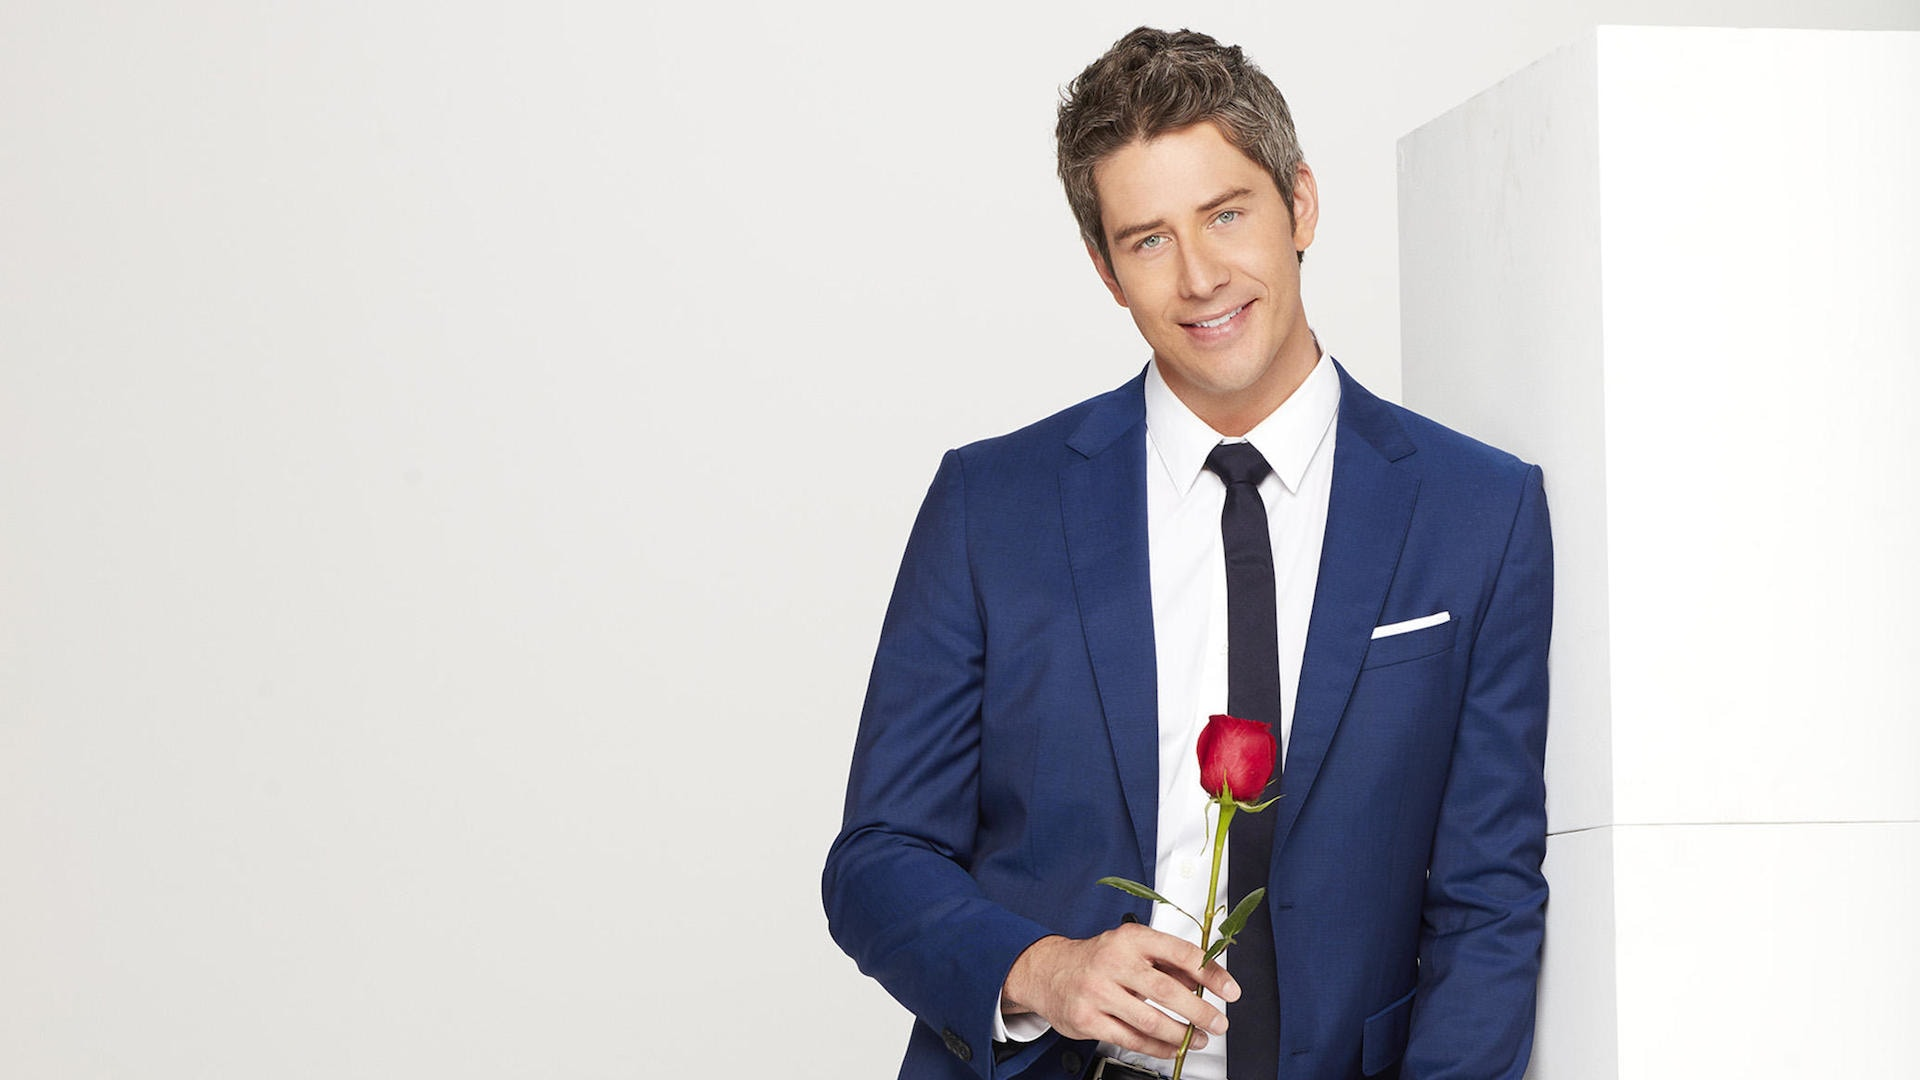 the-drama-of-bachelor-arie-luyendyk-jrs-season-has-already-begun.jpg